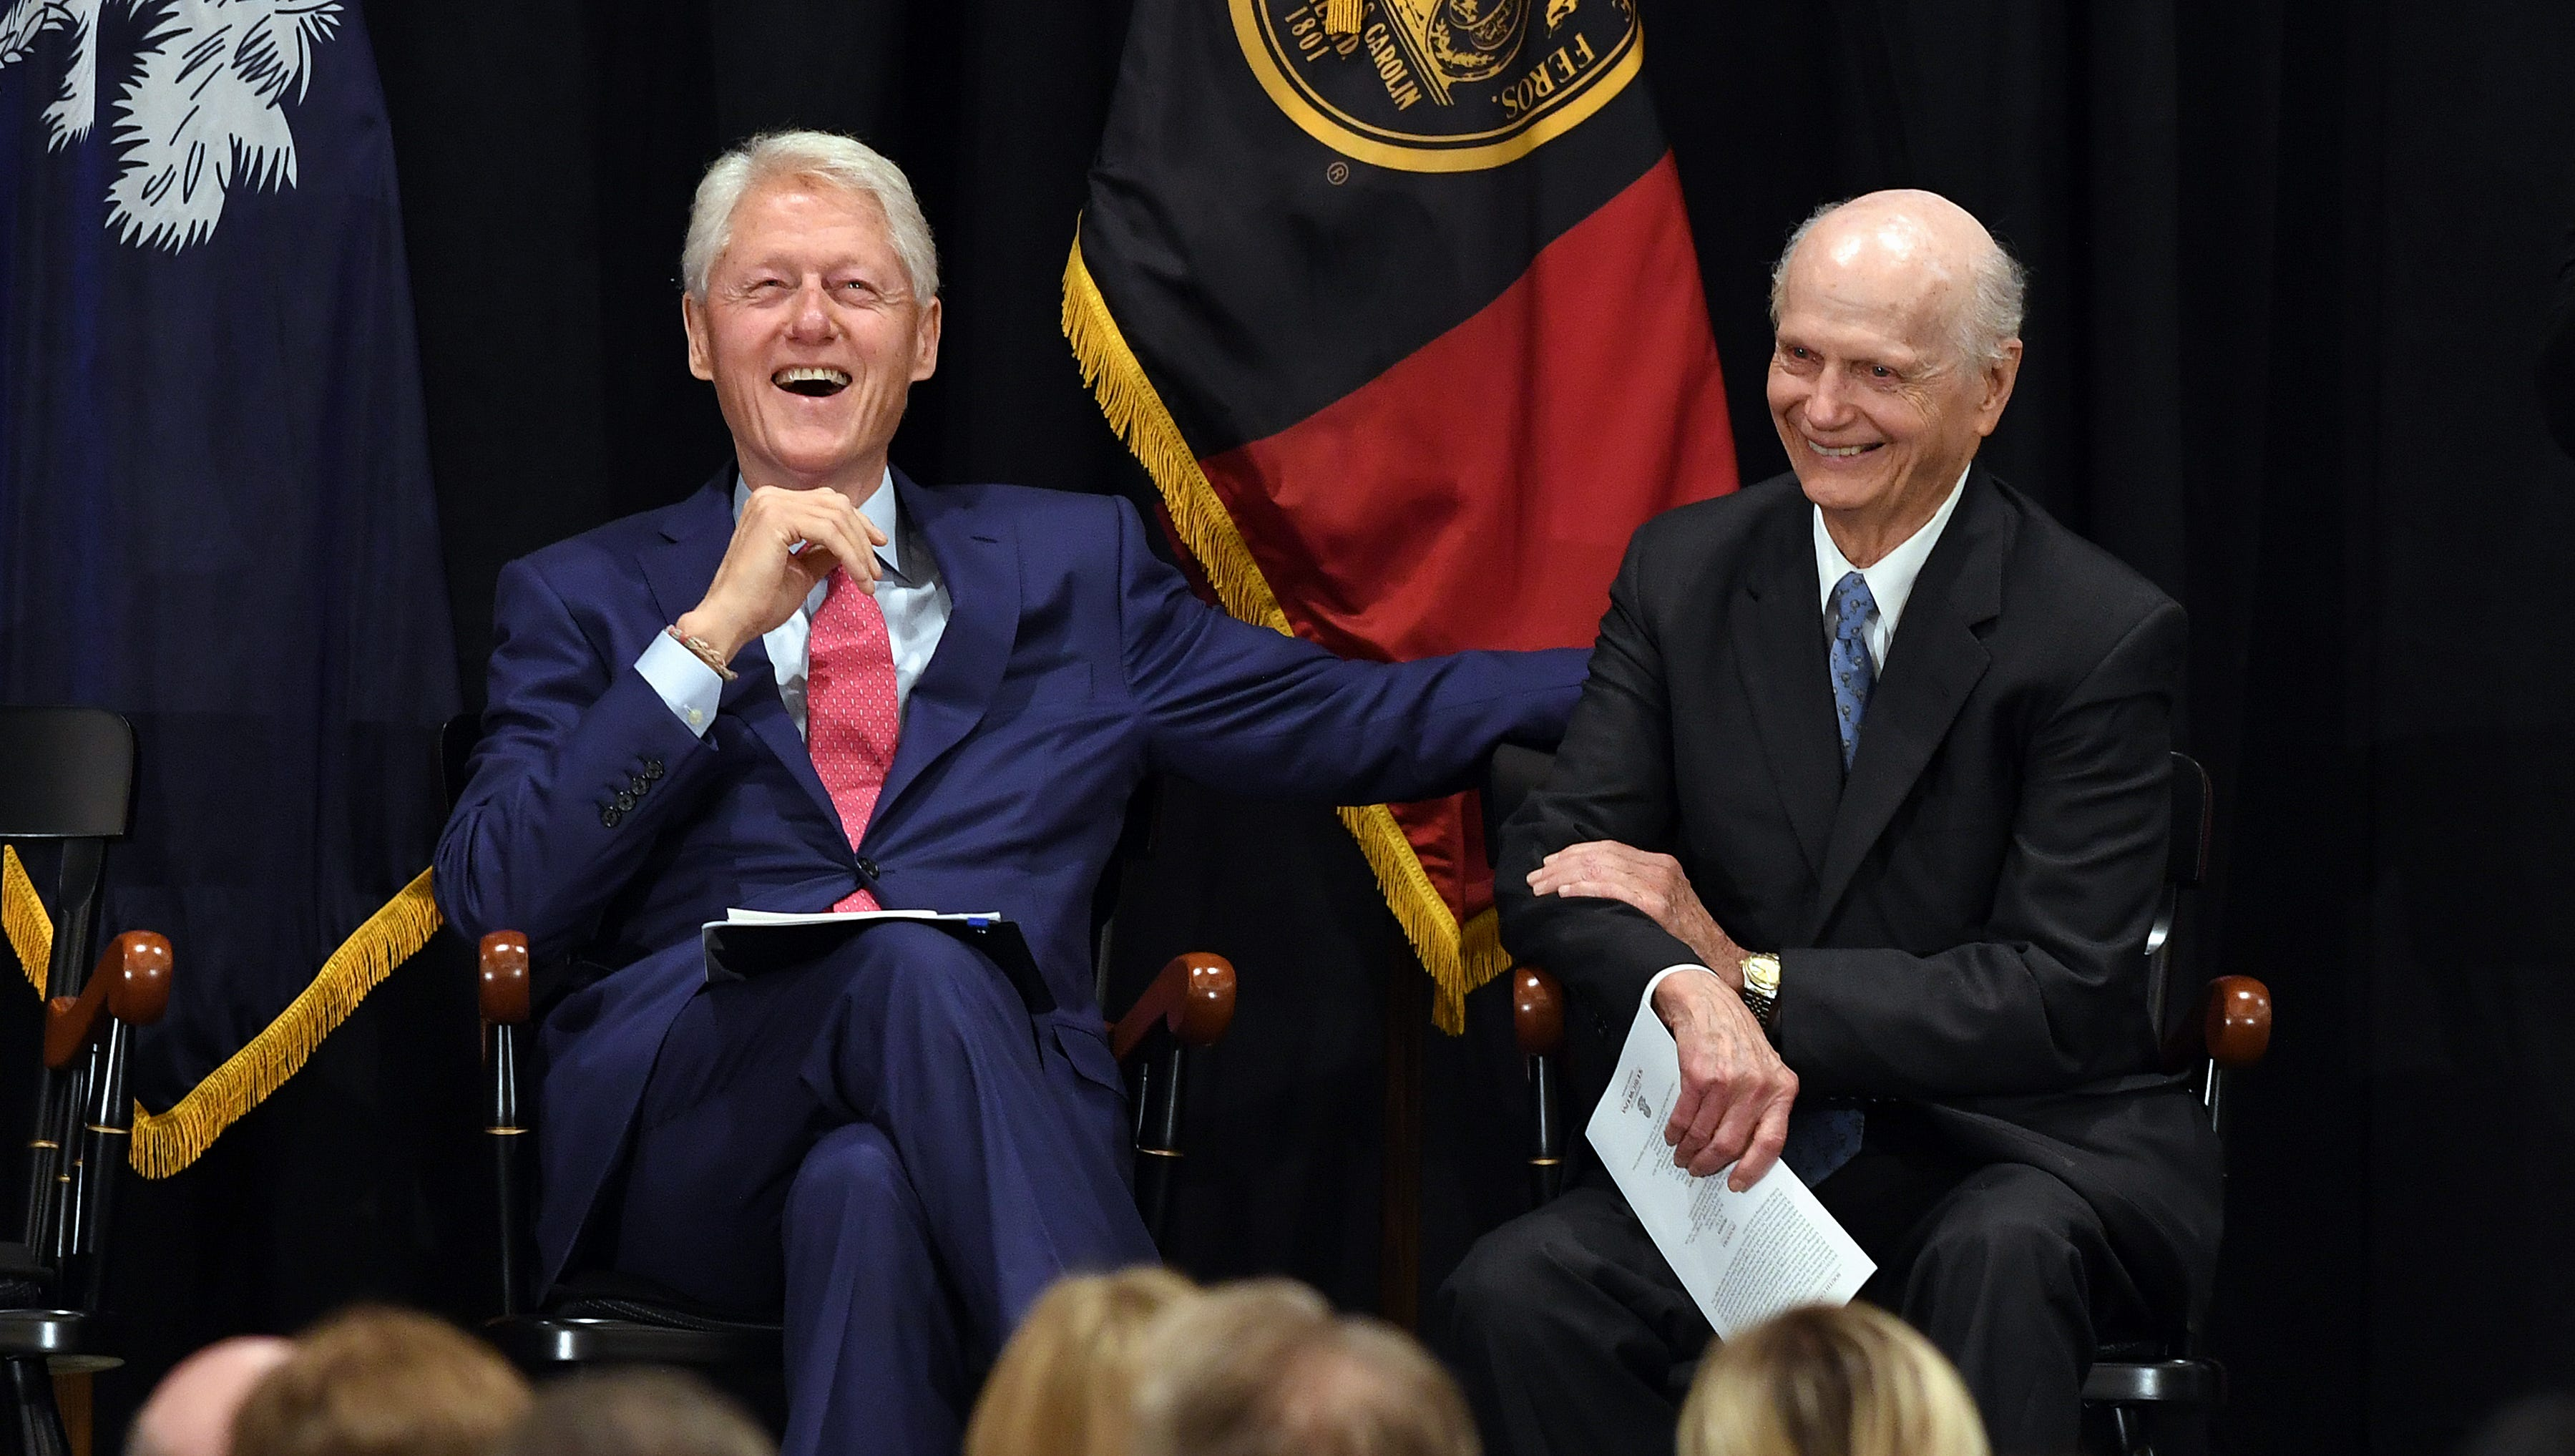 Former President Bill Clinton praises Dick Riley's life, courage and service